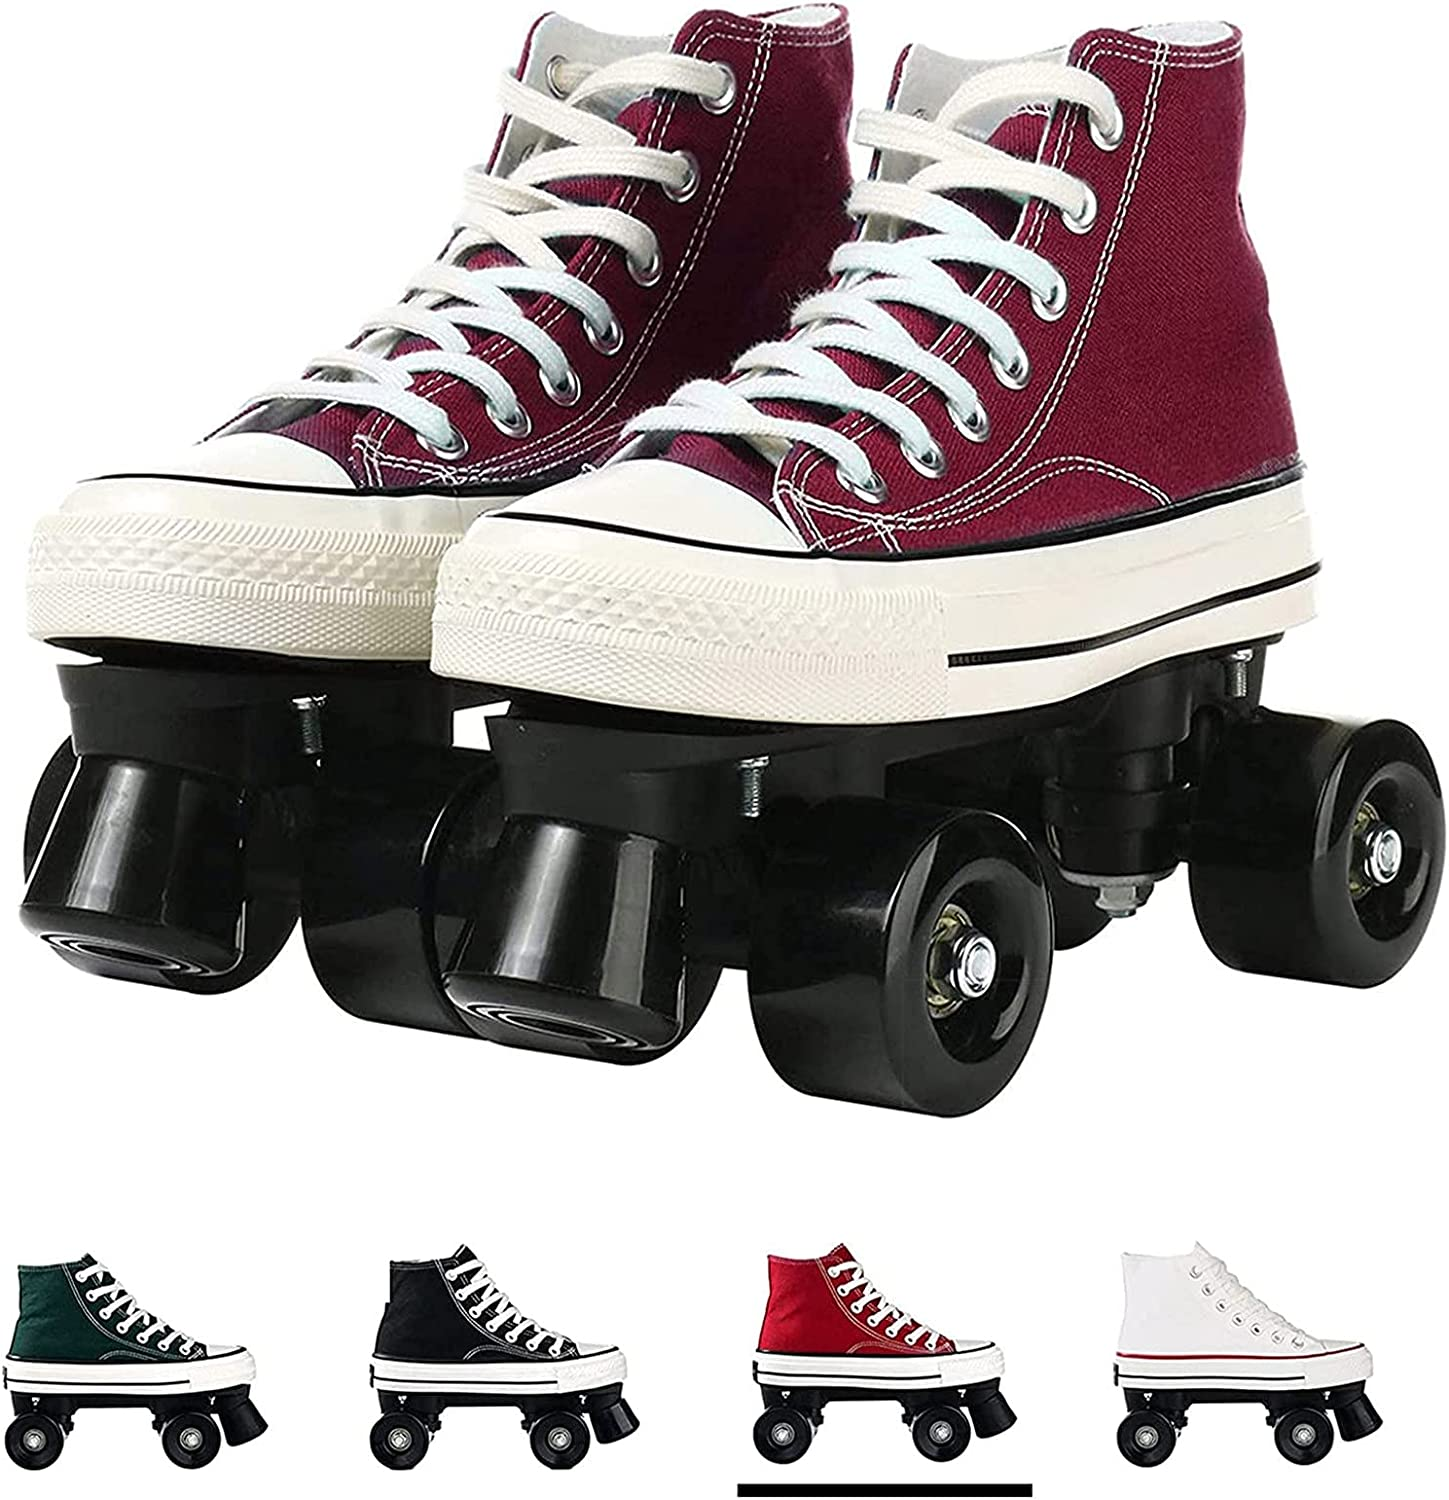 Quad Roller Skates for Men and Canvas Top Outdoor free shipping Women High Sn Tucson Mall